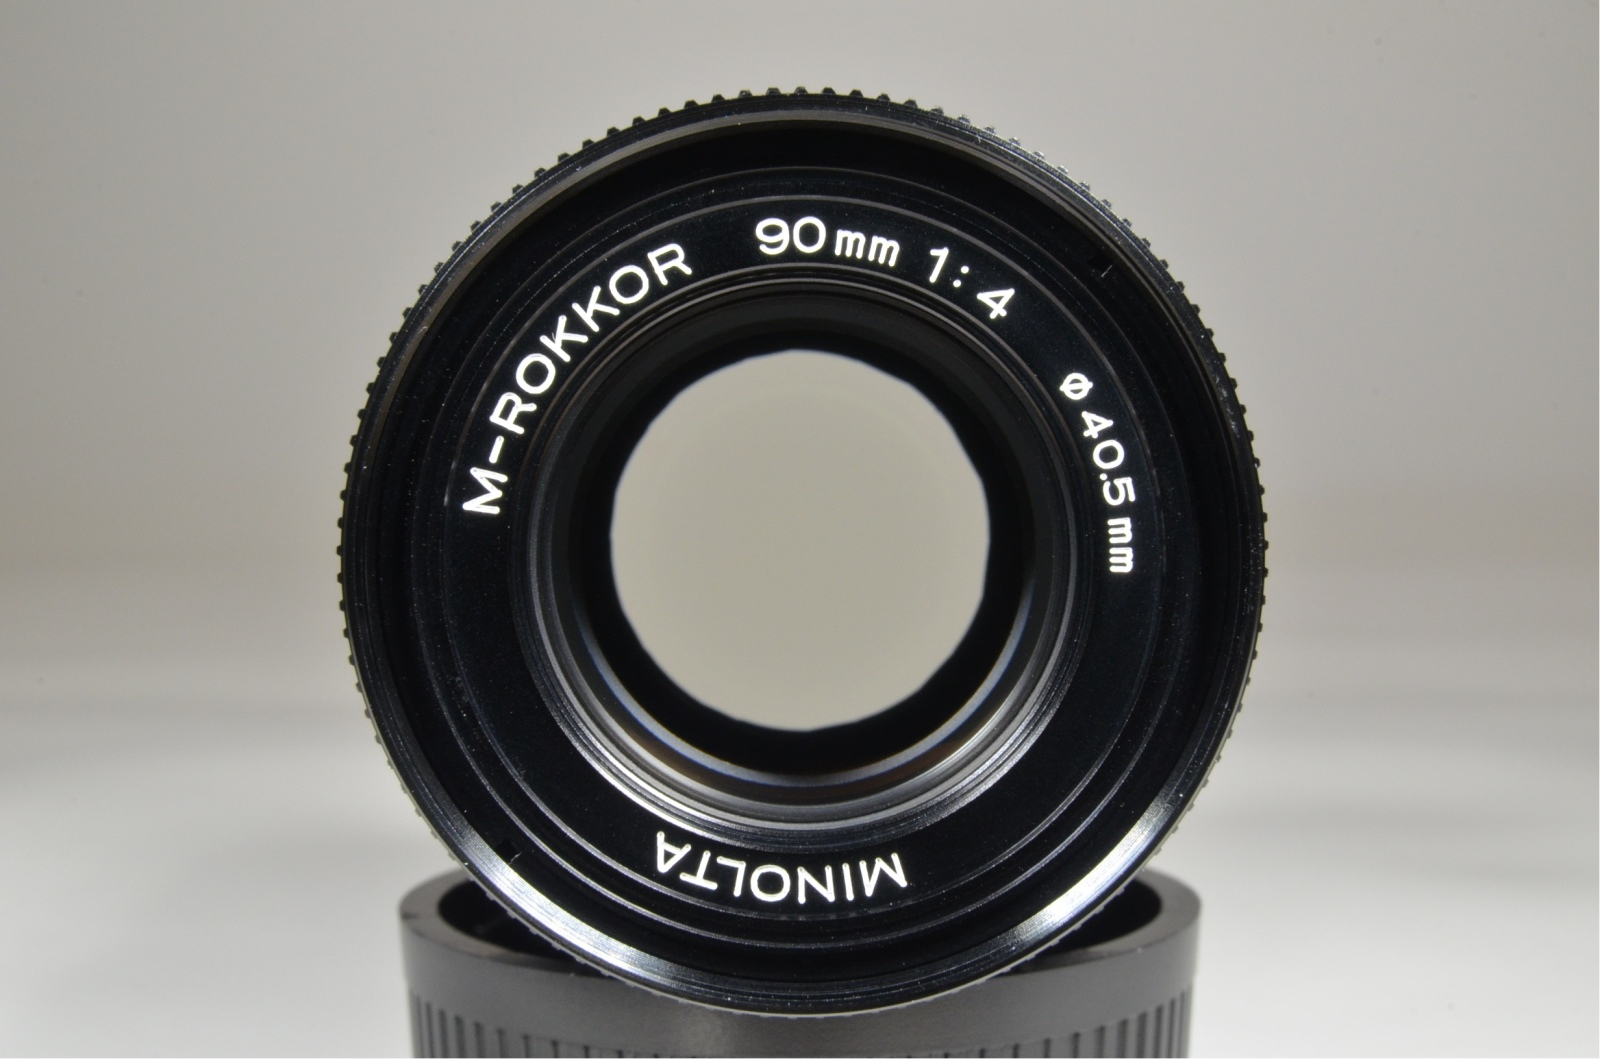 minolta cle w/ m-rokkor 40mm f2, 28mm f2.8, 90mm f4, flash, grip shooting tested